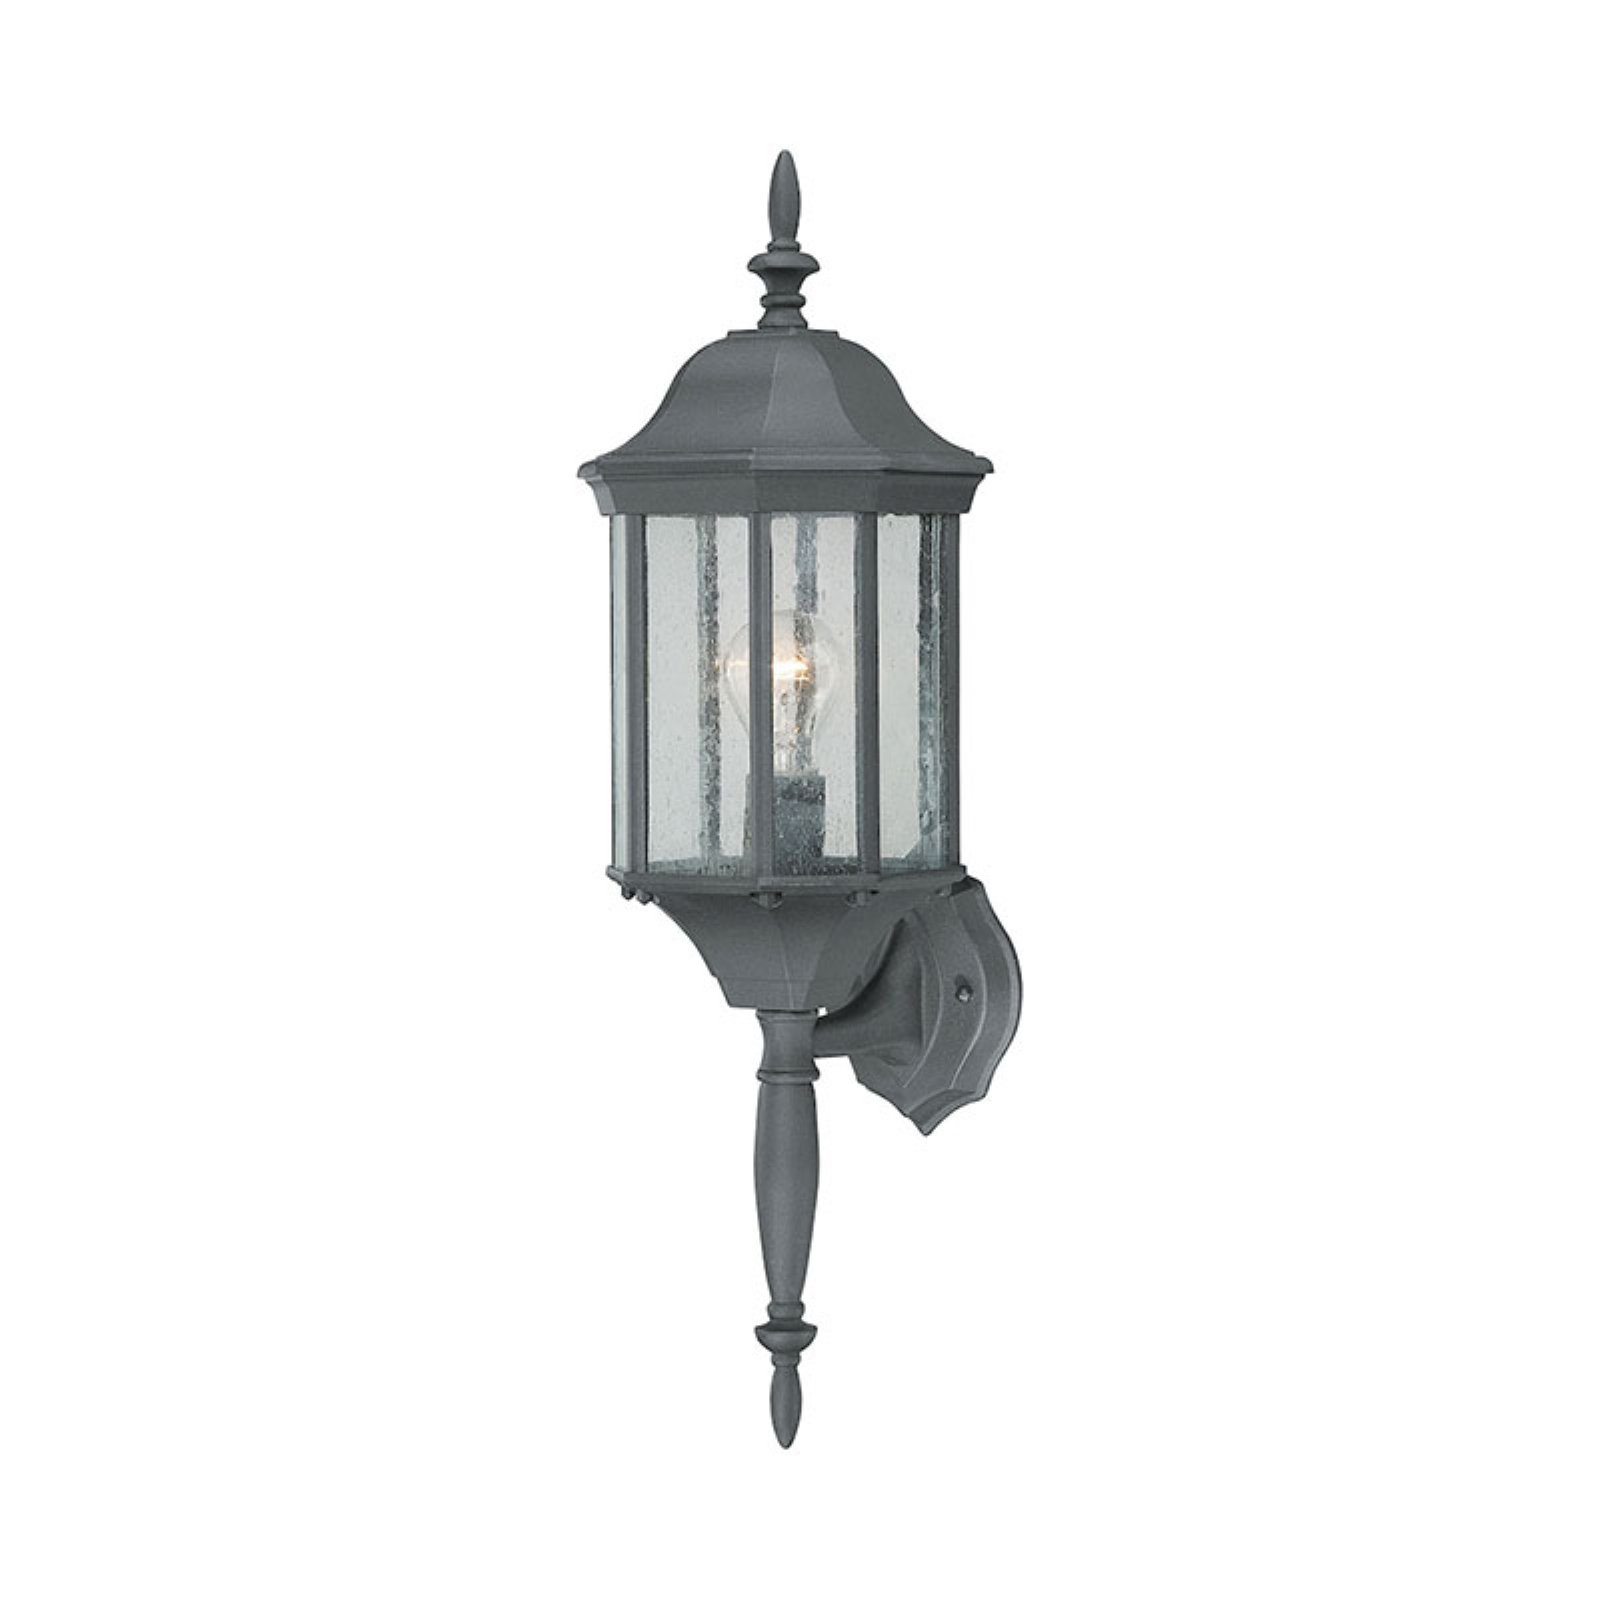 Thomas Lighting Hawthorne Outdoor Armed Wall Lantern by Thomas Lighting